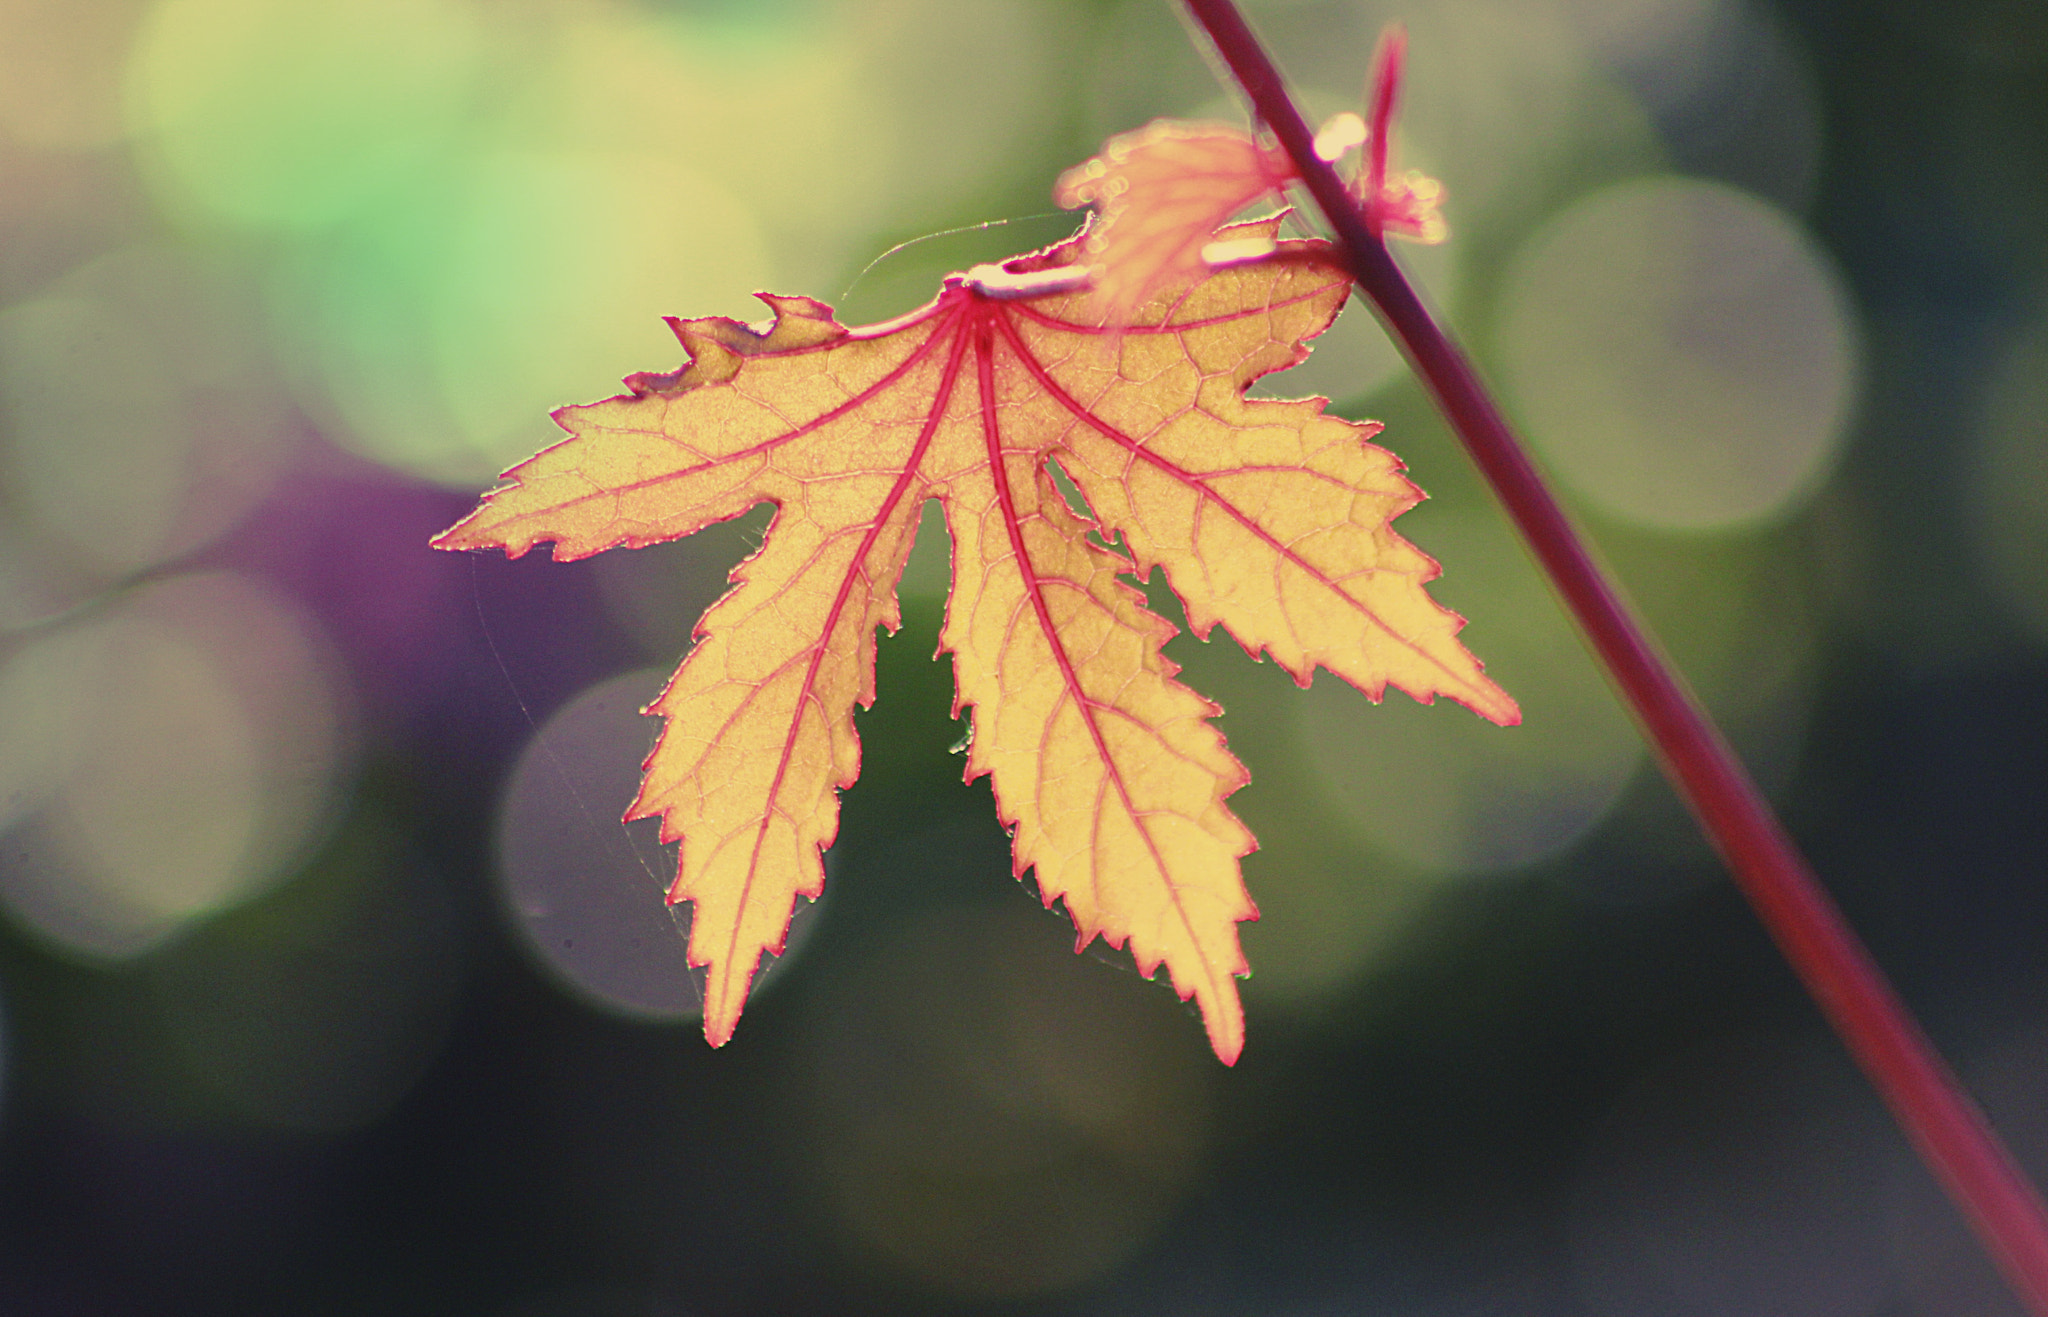 Photograph last leaf by Mistery Lady on 500px